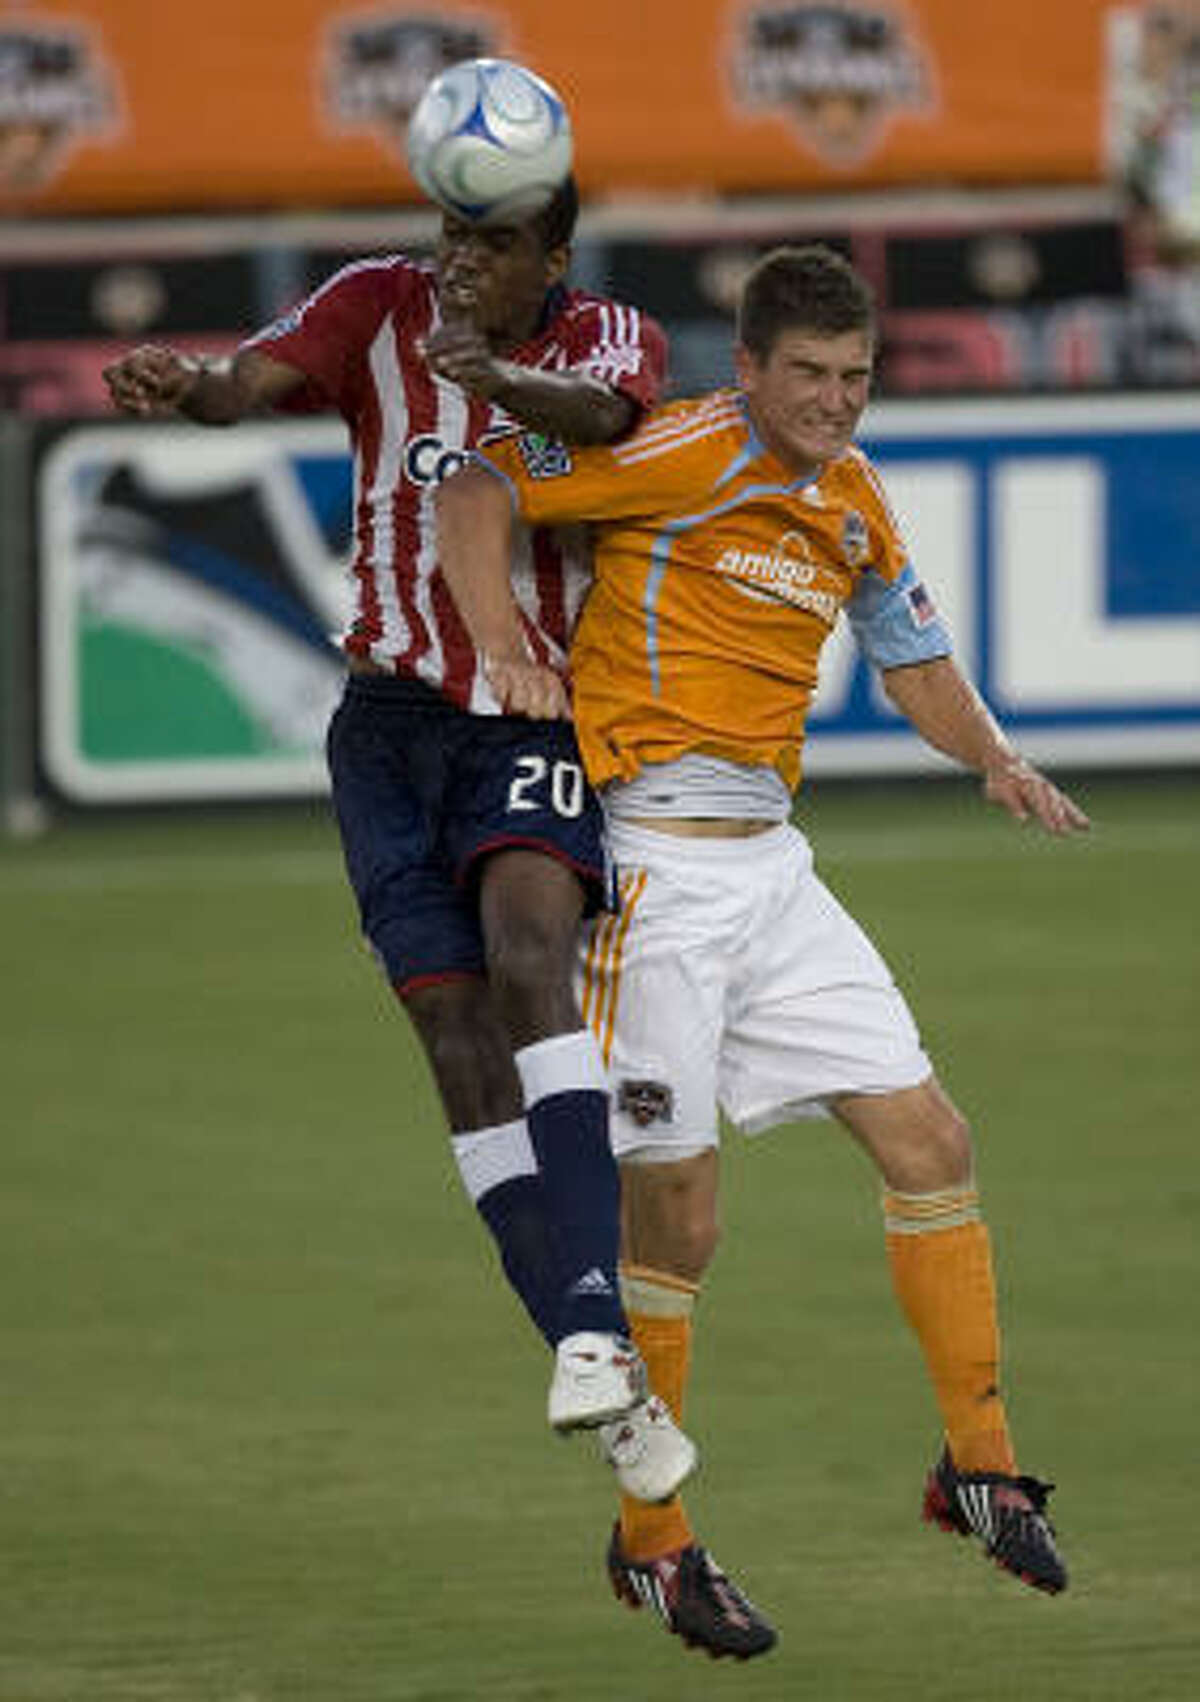 The Houston Dynamo's Bobby Boswell, right, and Chivas USA's Atiba Harris, left, during the first half.